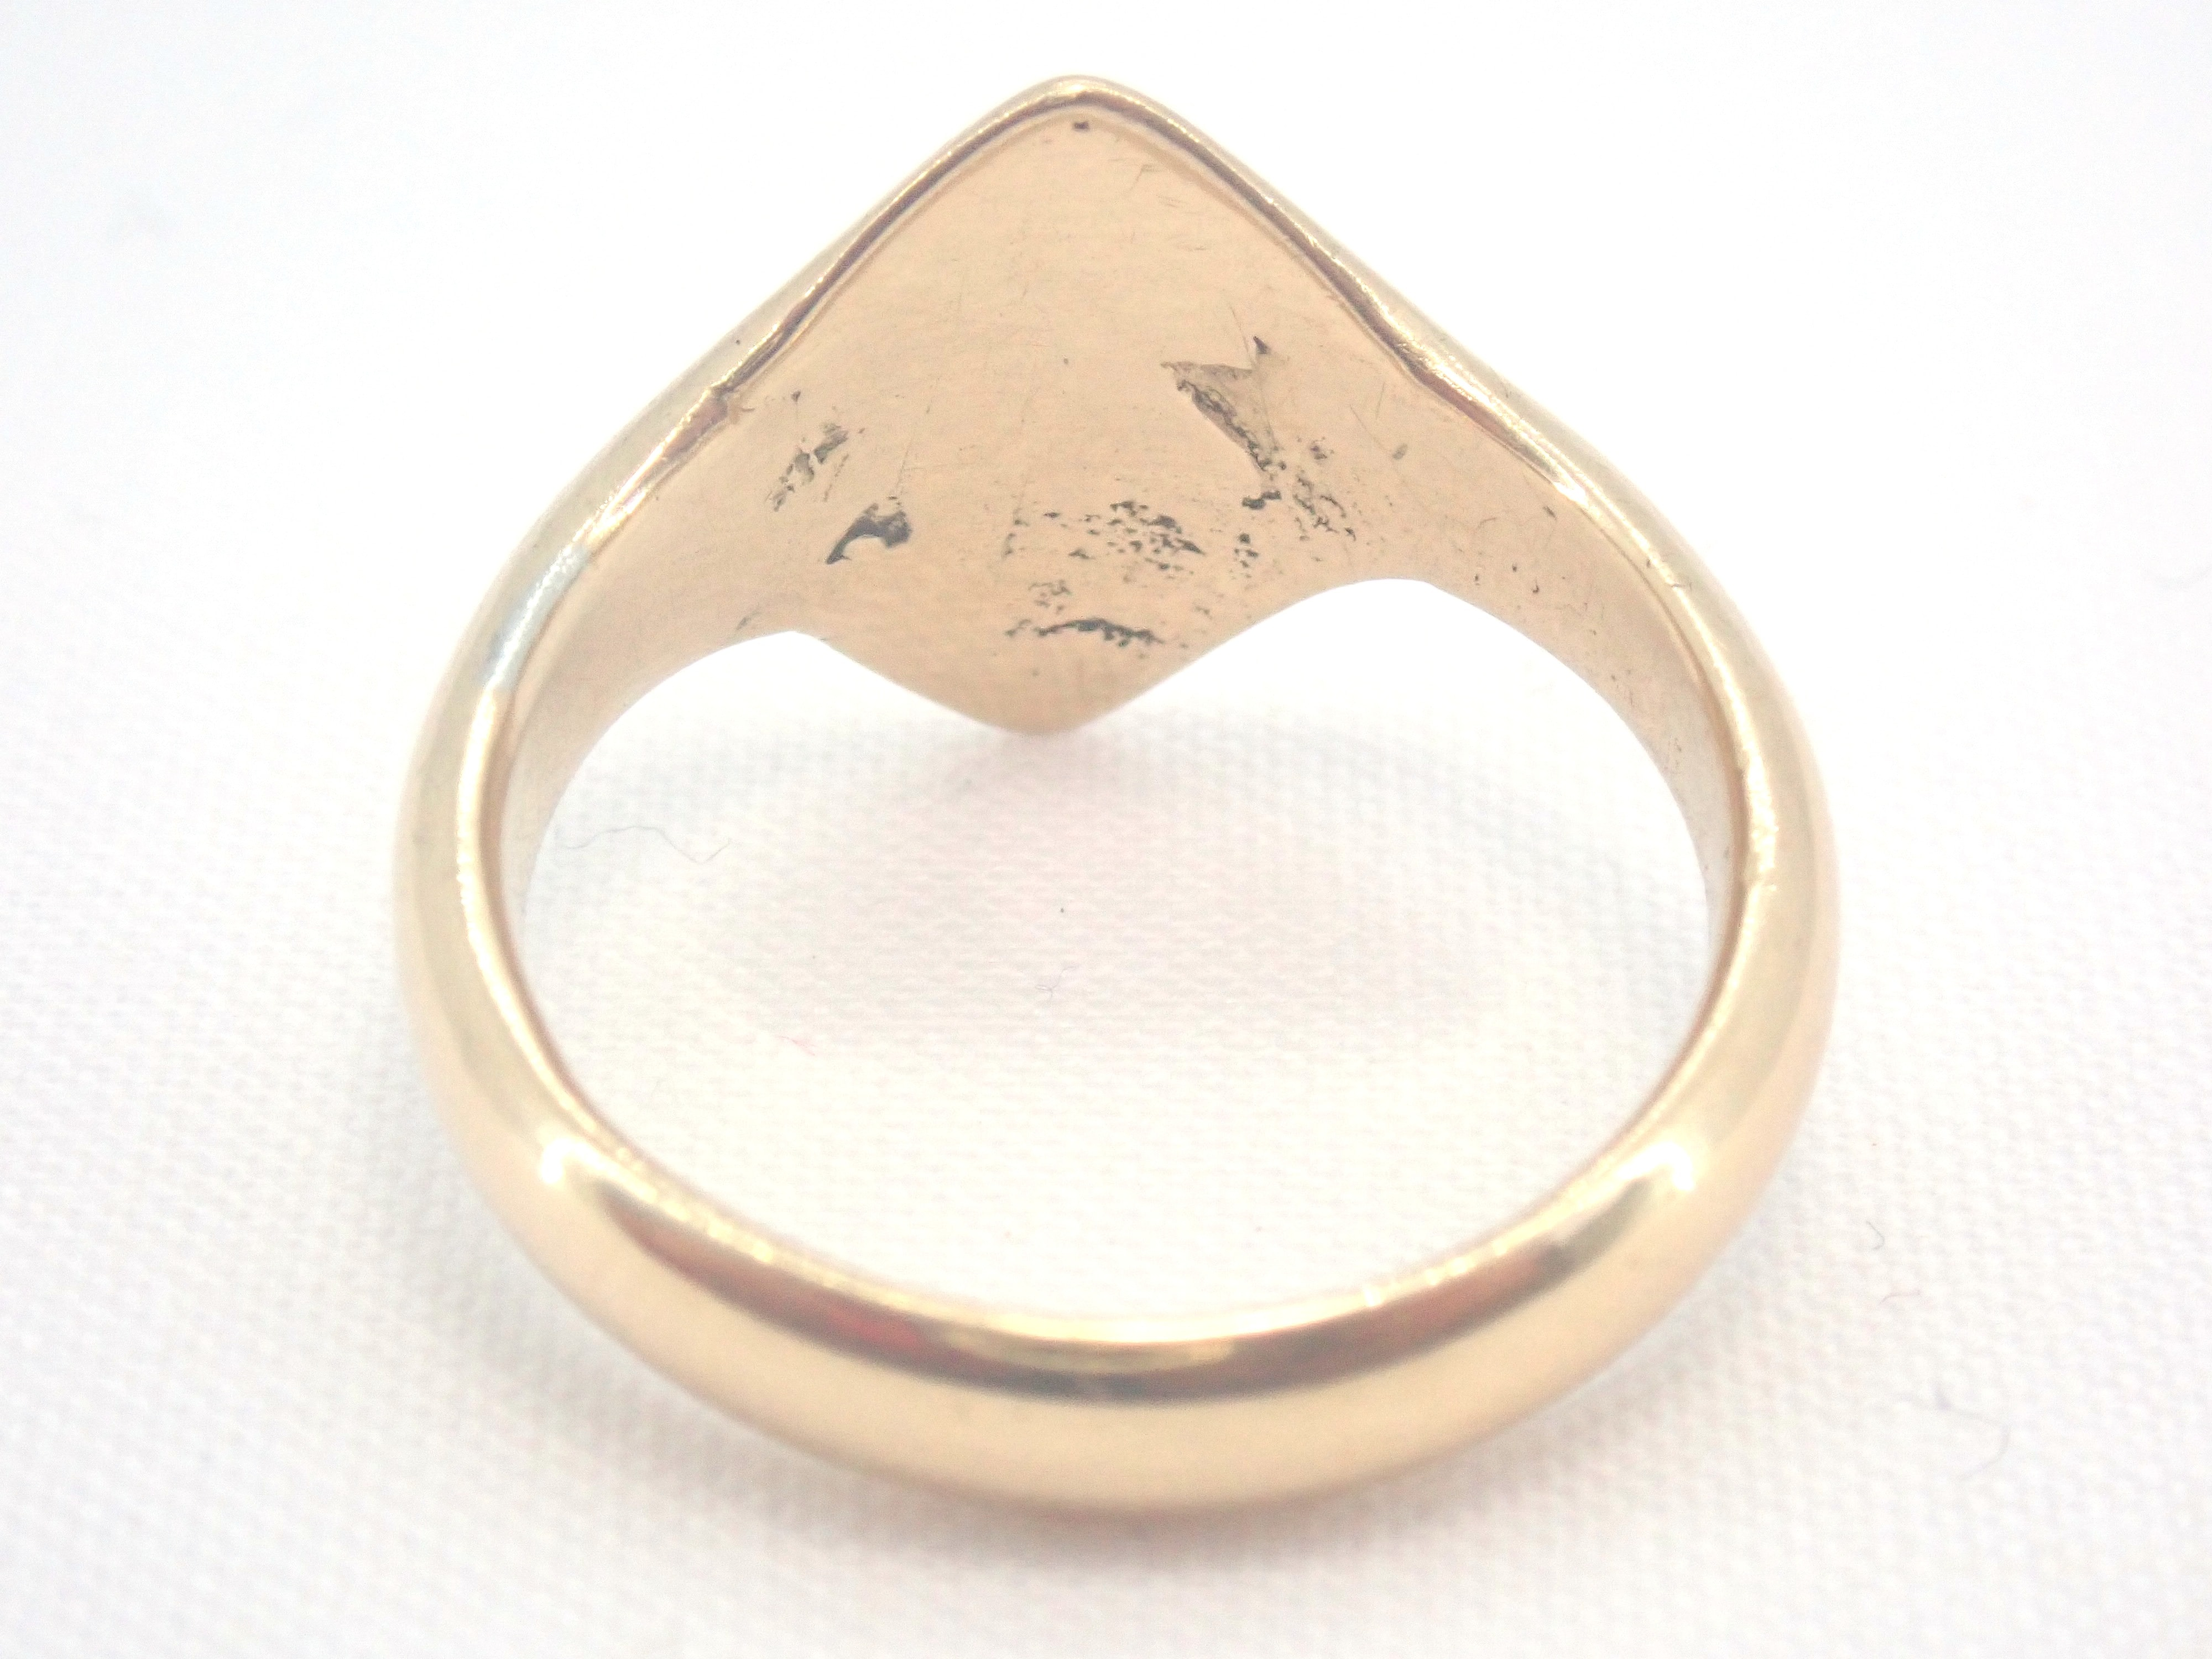 AZZ00729 1 - Vintage!! Solid 18 carat Gold Diamond Shaped Signet Ring - Size M - 5.3gms #002